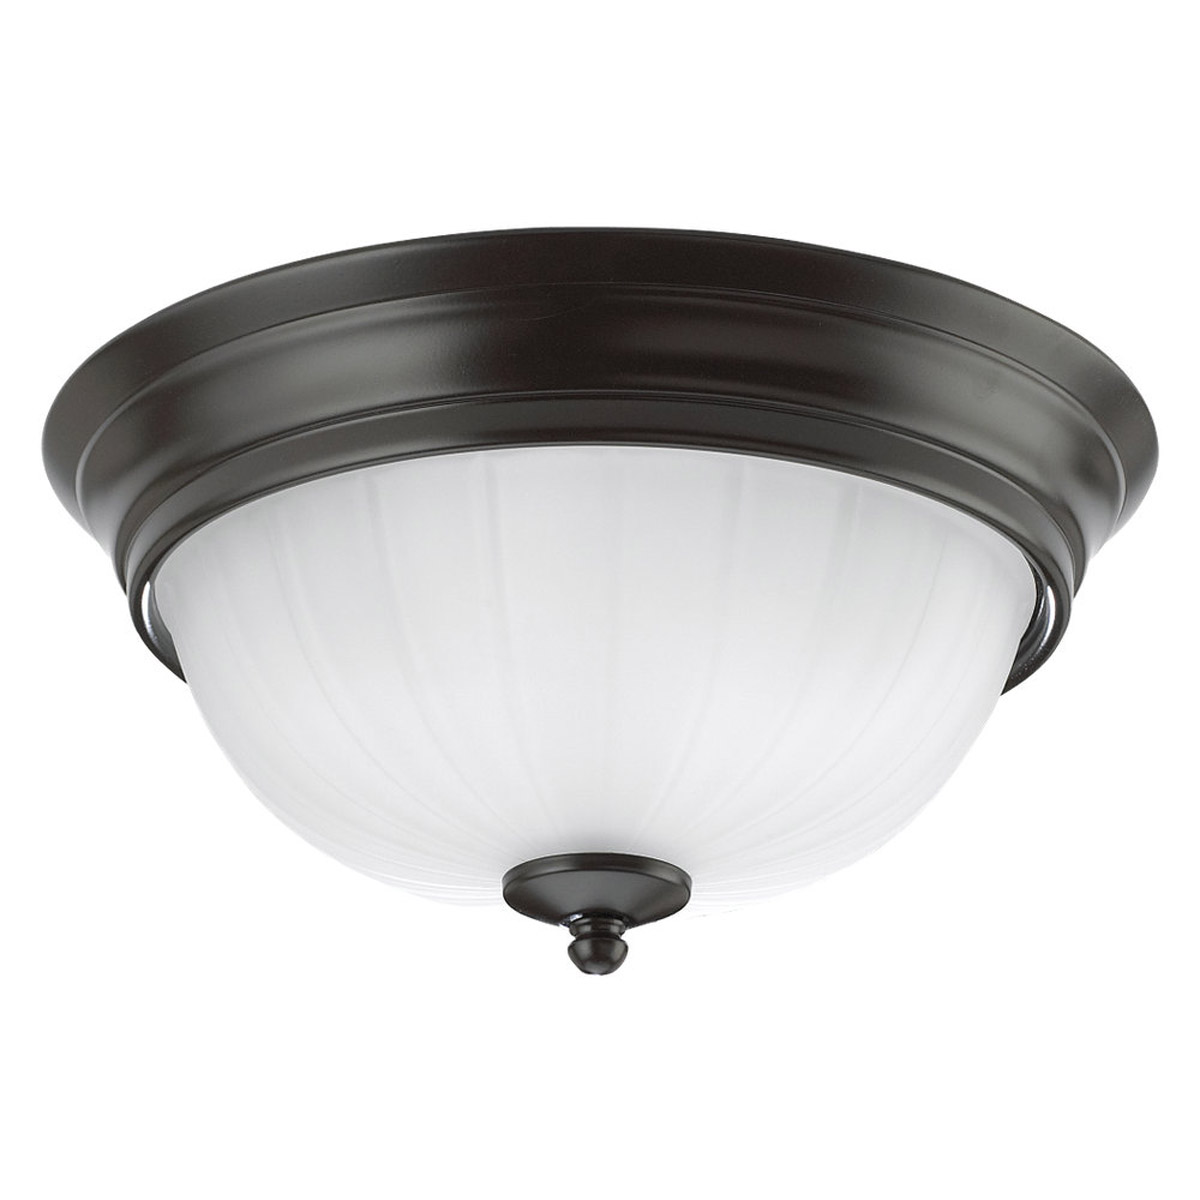 Sea Gull Lighting Linwood 1 Light Flush Mount in Heirloom Bronze 7504-782